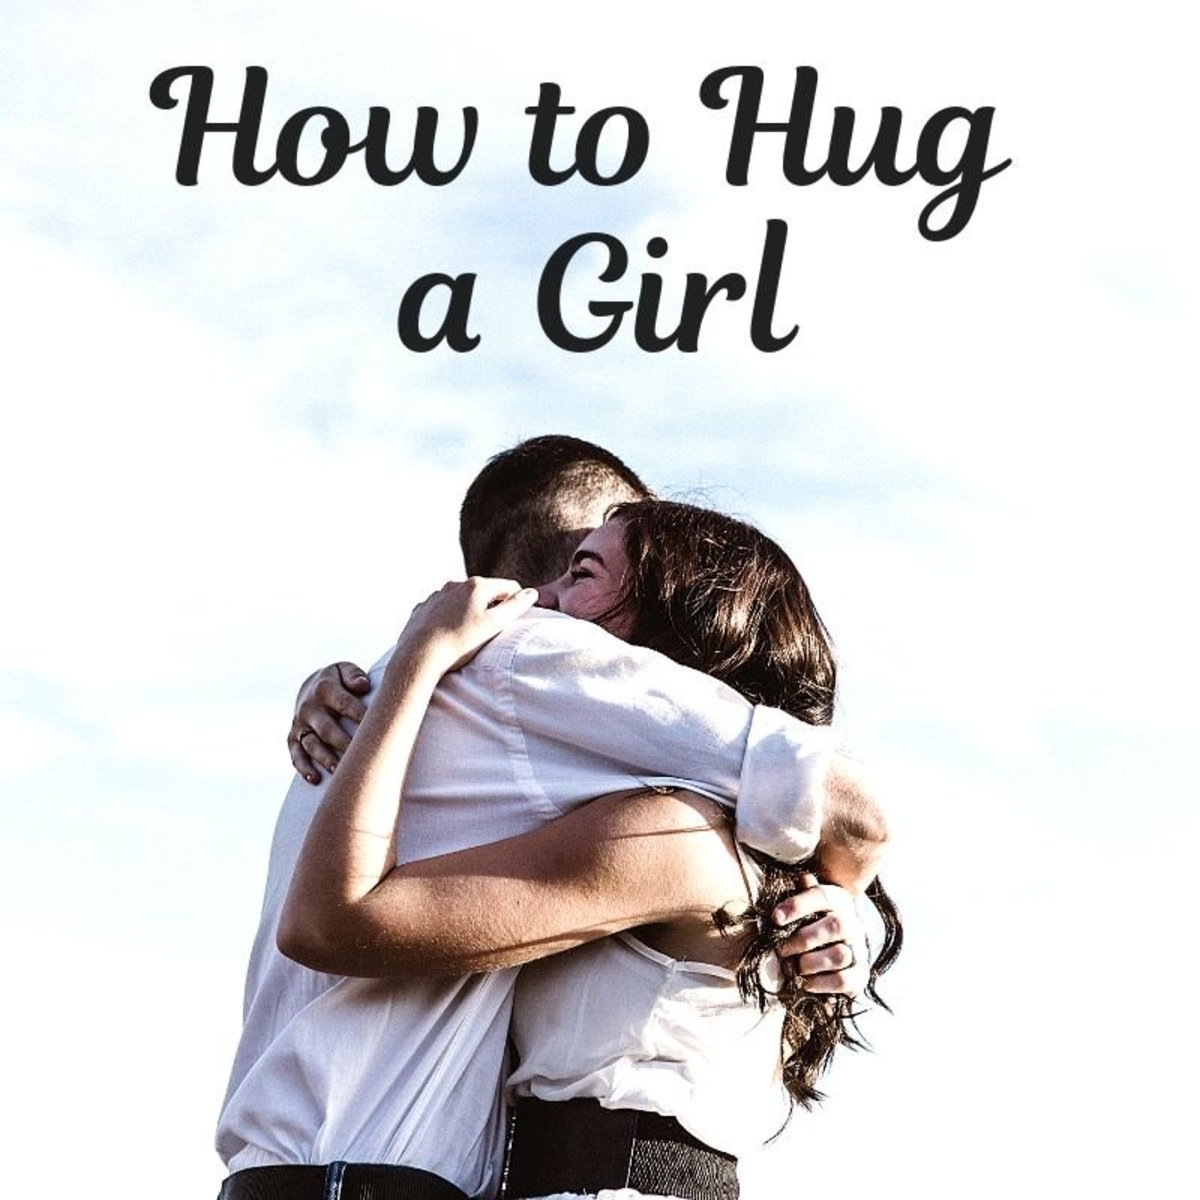 Learn the best hugging techniques for female friends, girlfriends, and crushes.